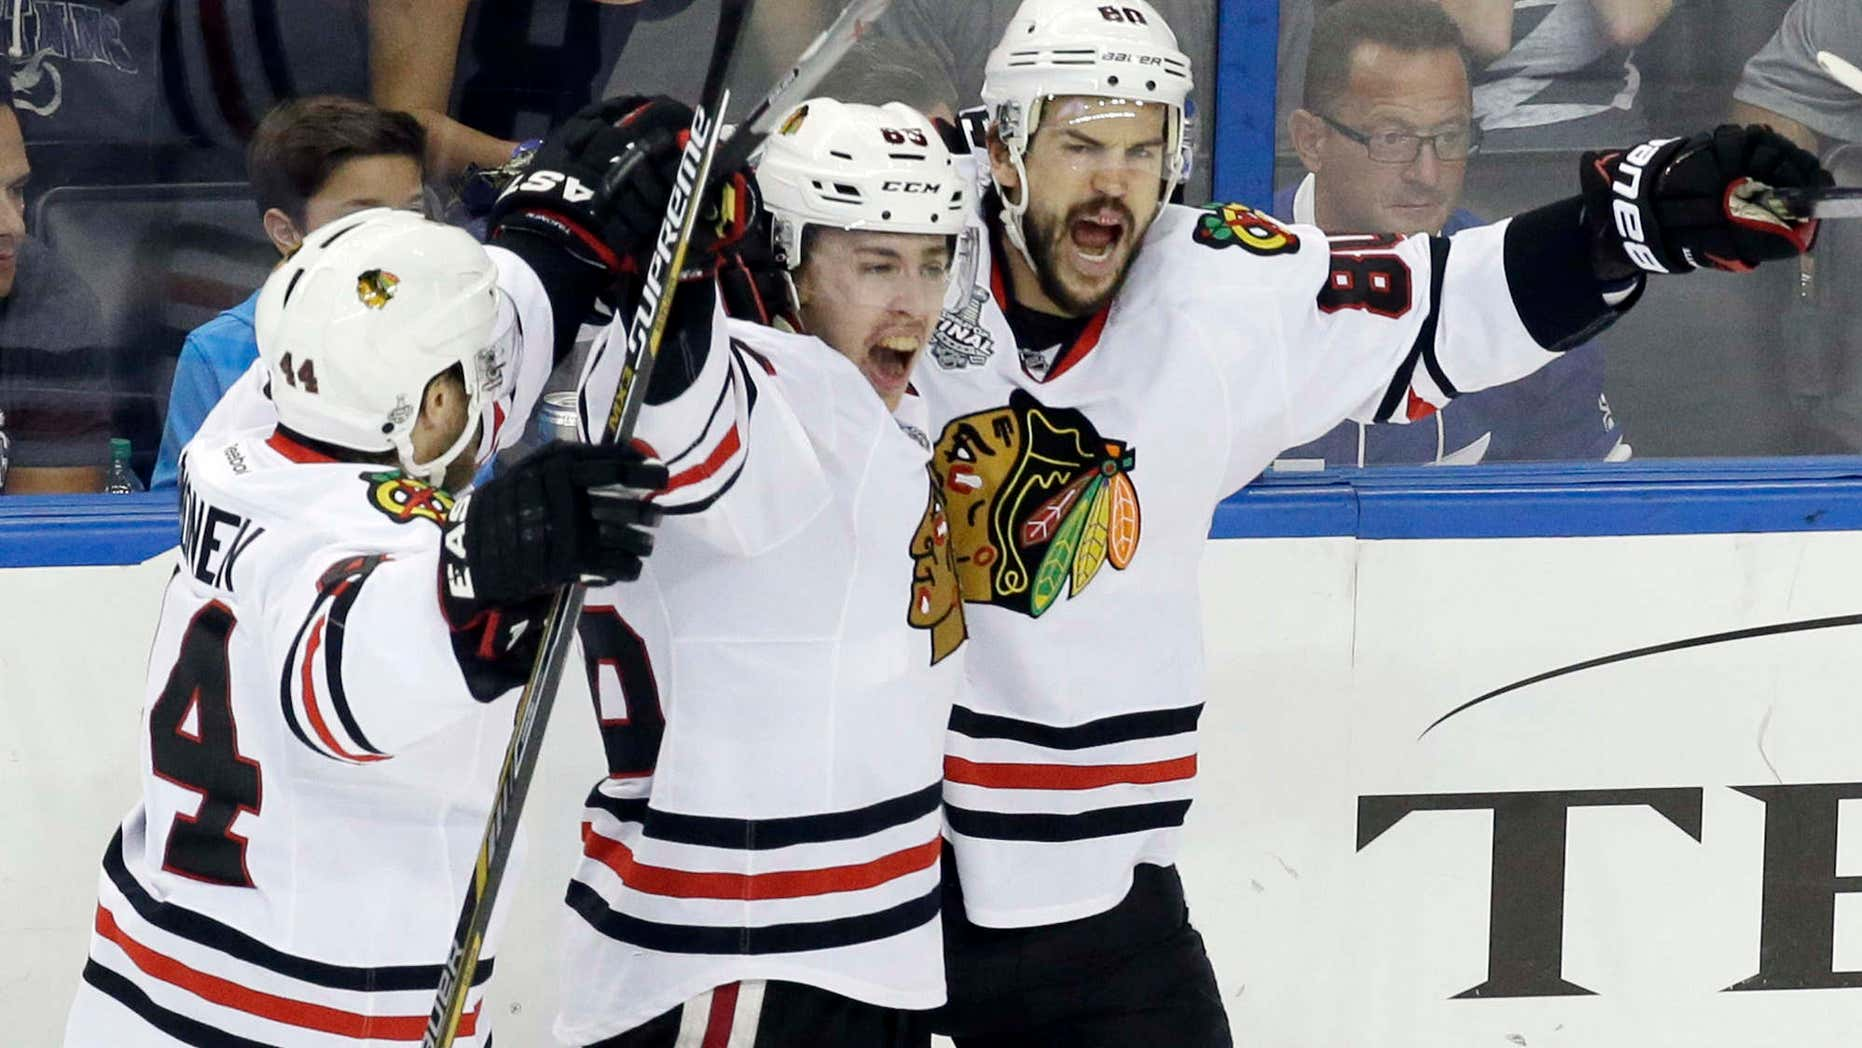 June 13, 2015: Chicago Blackhawks center Antoine Vermette (80) celebrates with left wing Teuvo Teravainen, center, and defenseman Kimmo Timonen after Vermette scored a goal against the Tampa Bay Lightning during the third period of Game 5 of the NHL hockey Stanley Cup Final.